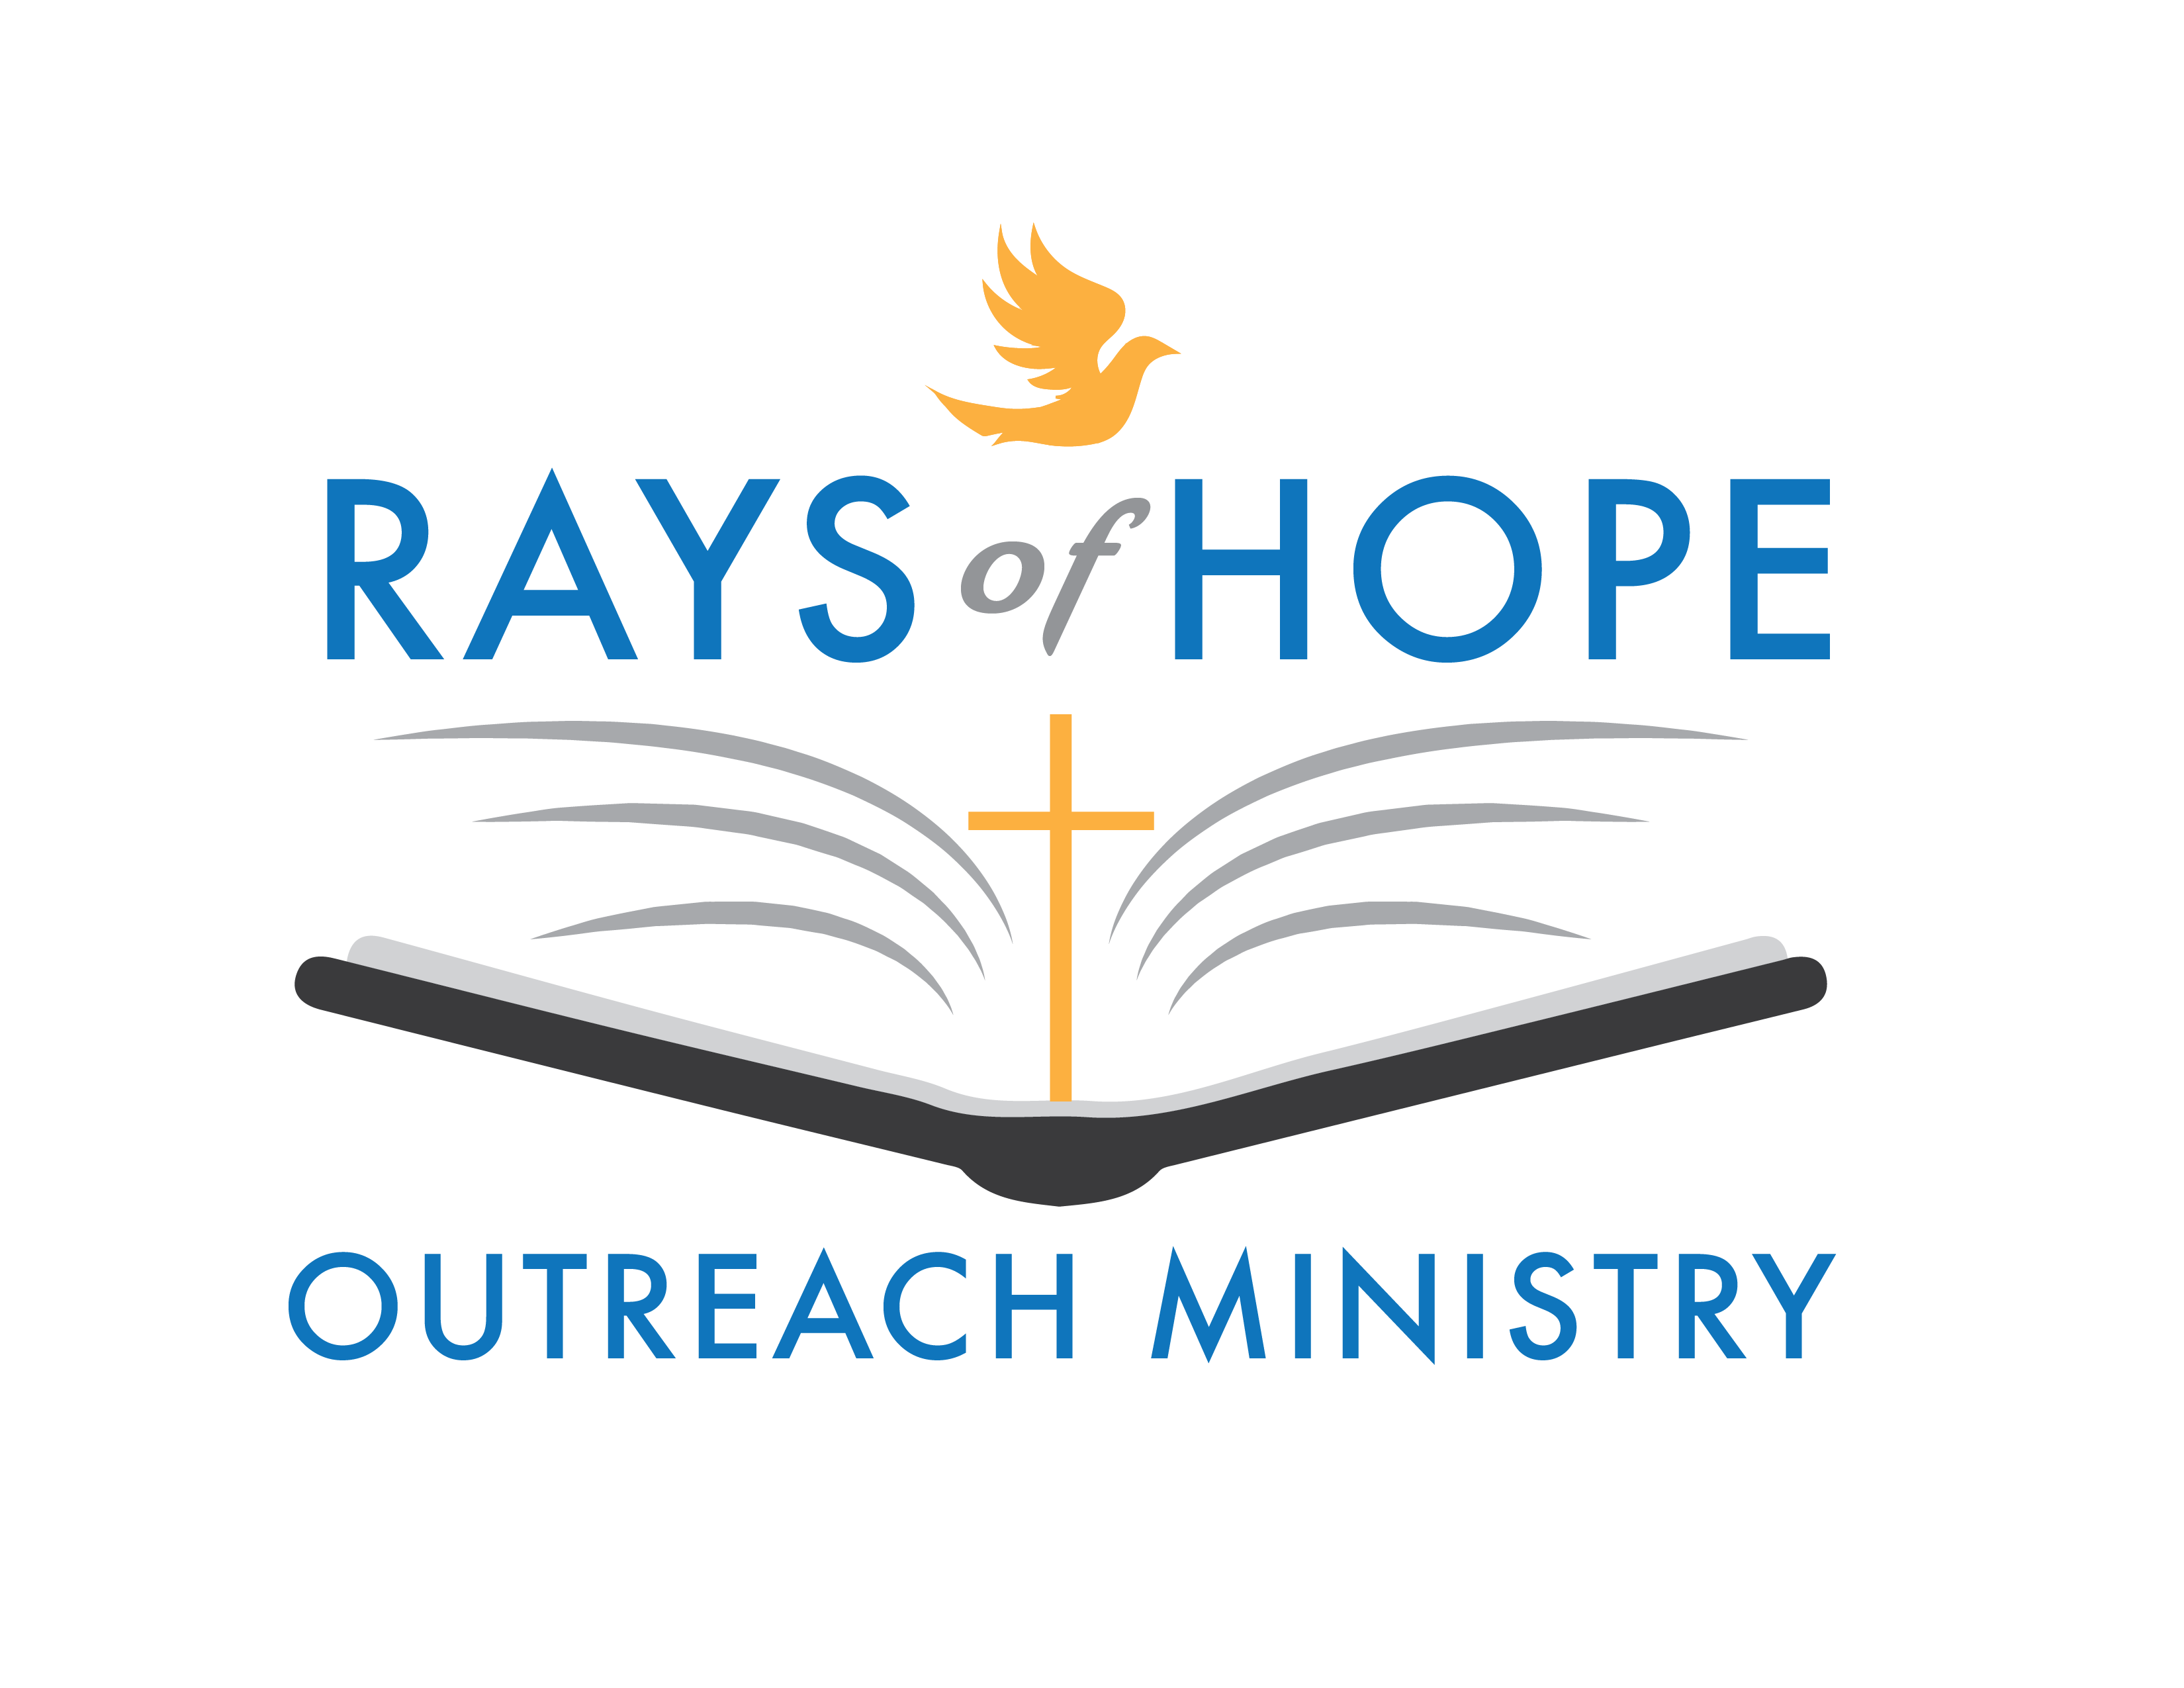 Rays of Hope Outreach Ministry's Company logo